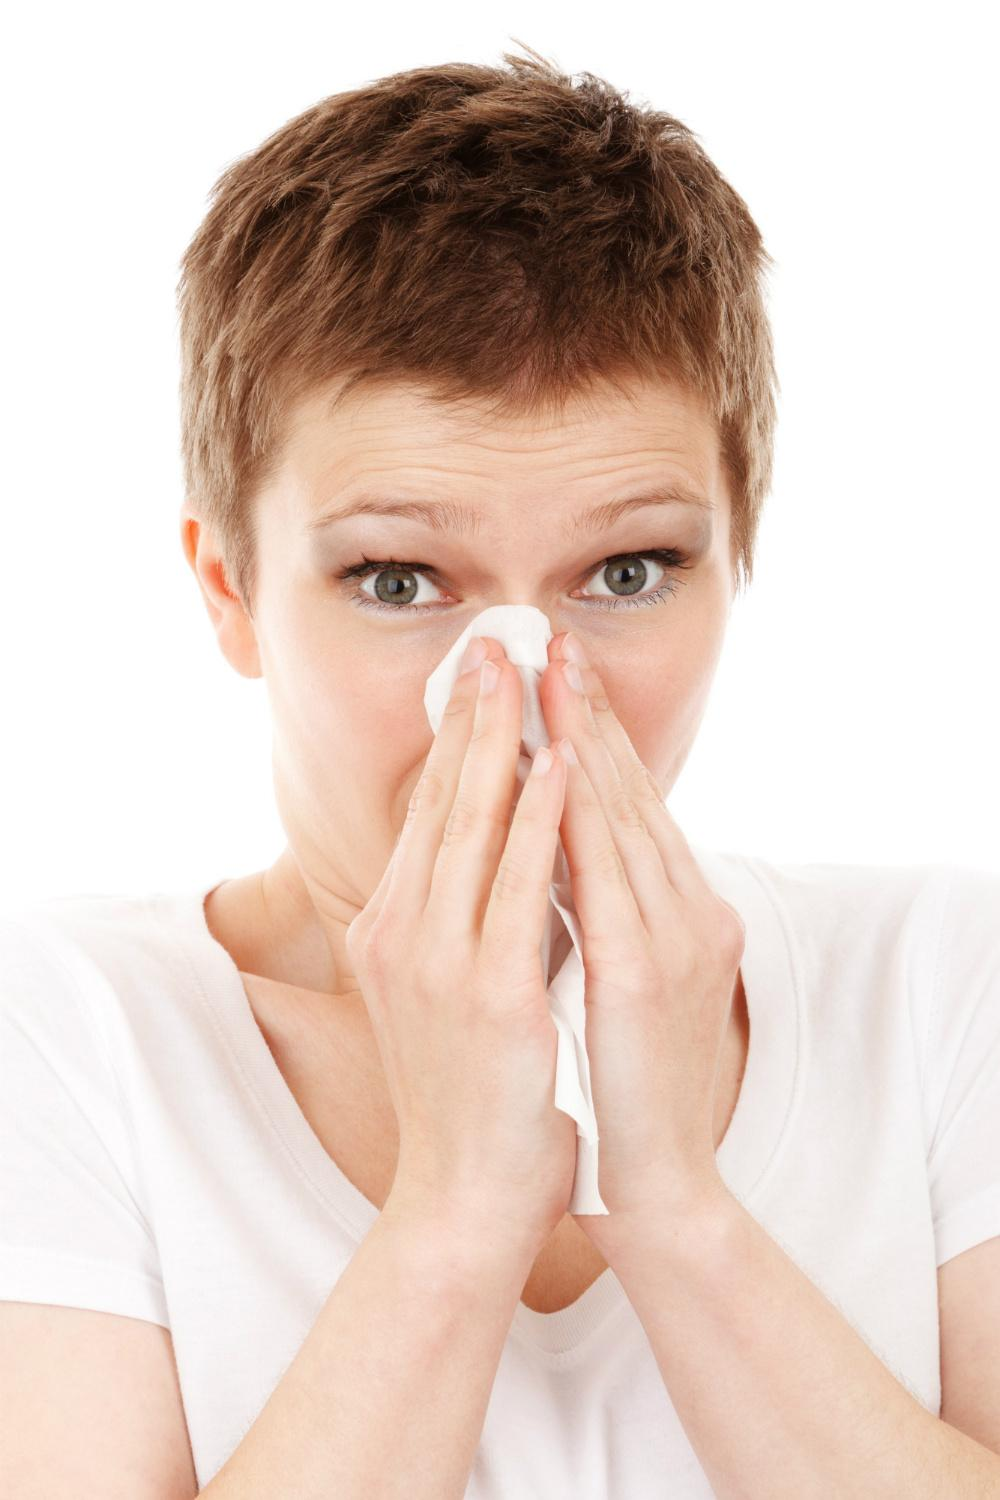 Summer Colds Explained: What Are They and How Do You Deal with Them?